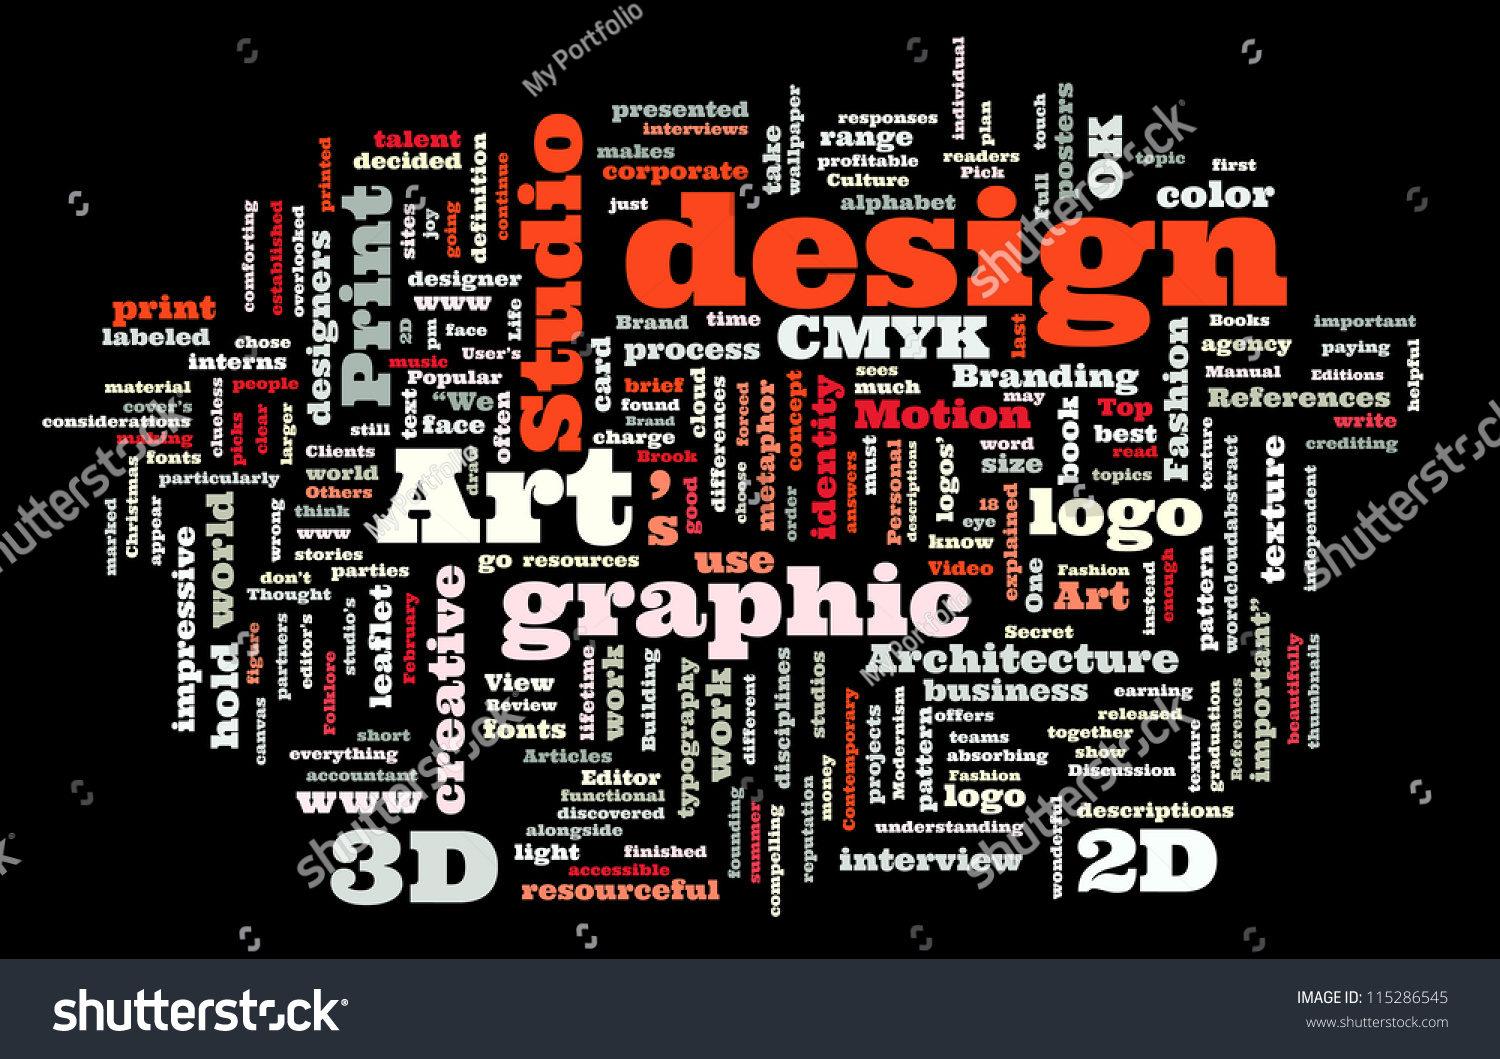 Graphic design studio trendy print concept stock vector 115286545 shutterstock for Microsoft word graphic design